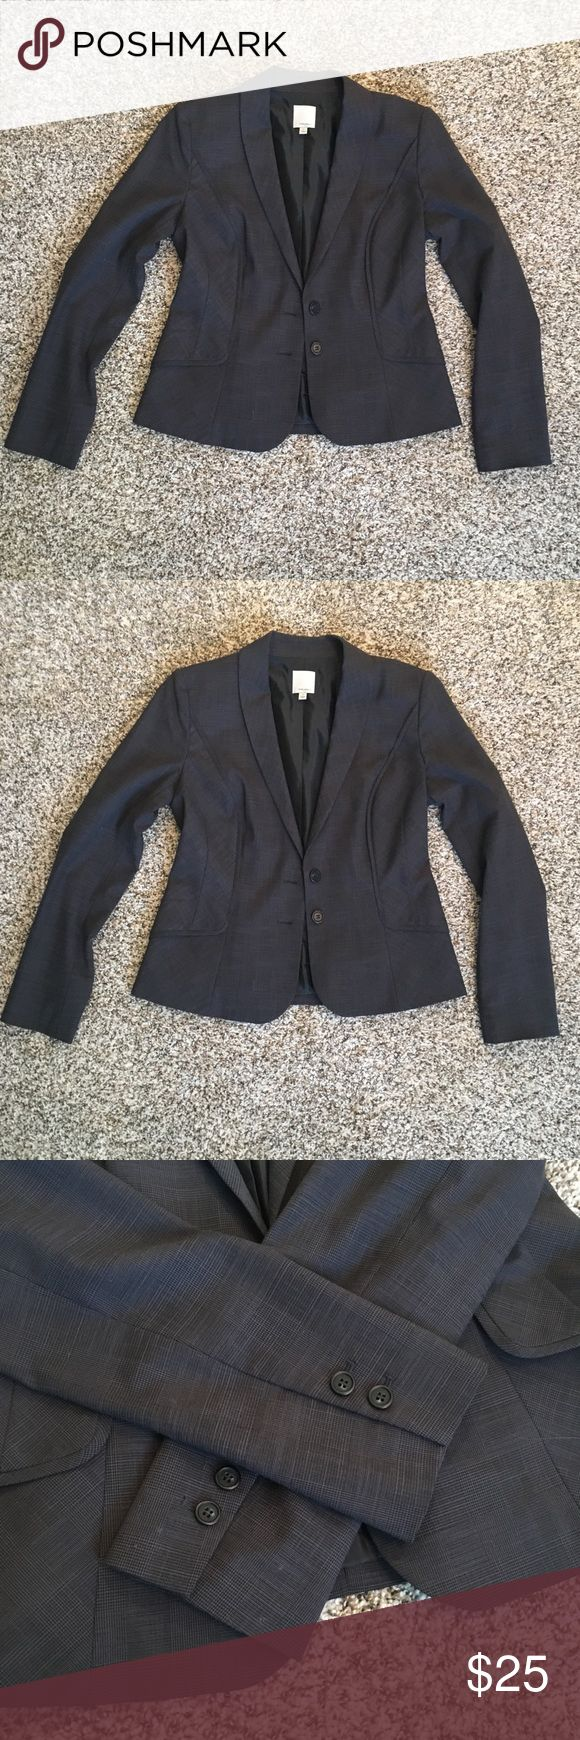 Size 8 gray women's suit jacket Classic, beautiful, high quality dark gray suit jacket for women. I got this beaut from Nordstrom originally and paid a pretty penny only to wear it once. The brand is Halogen and it's a size 8. 2 buttons in the front waist area and 2 buttons on each sleeve. Nice inner lining. Excellent condition. Halogen Jackets & Coats Blazers